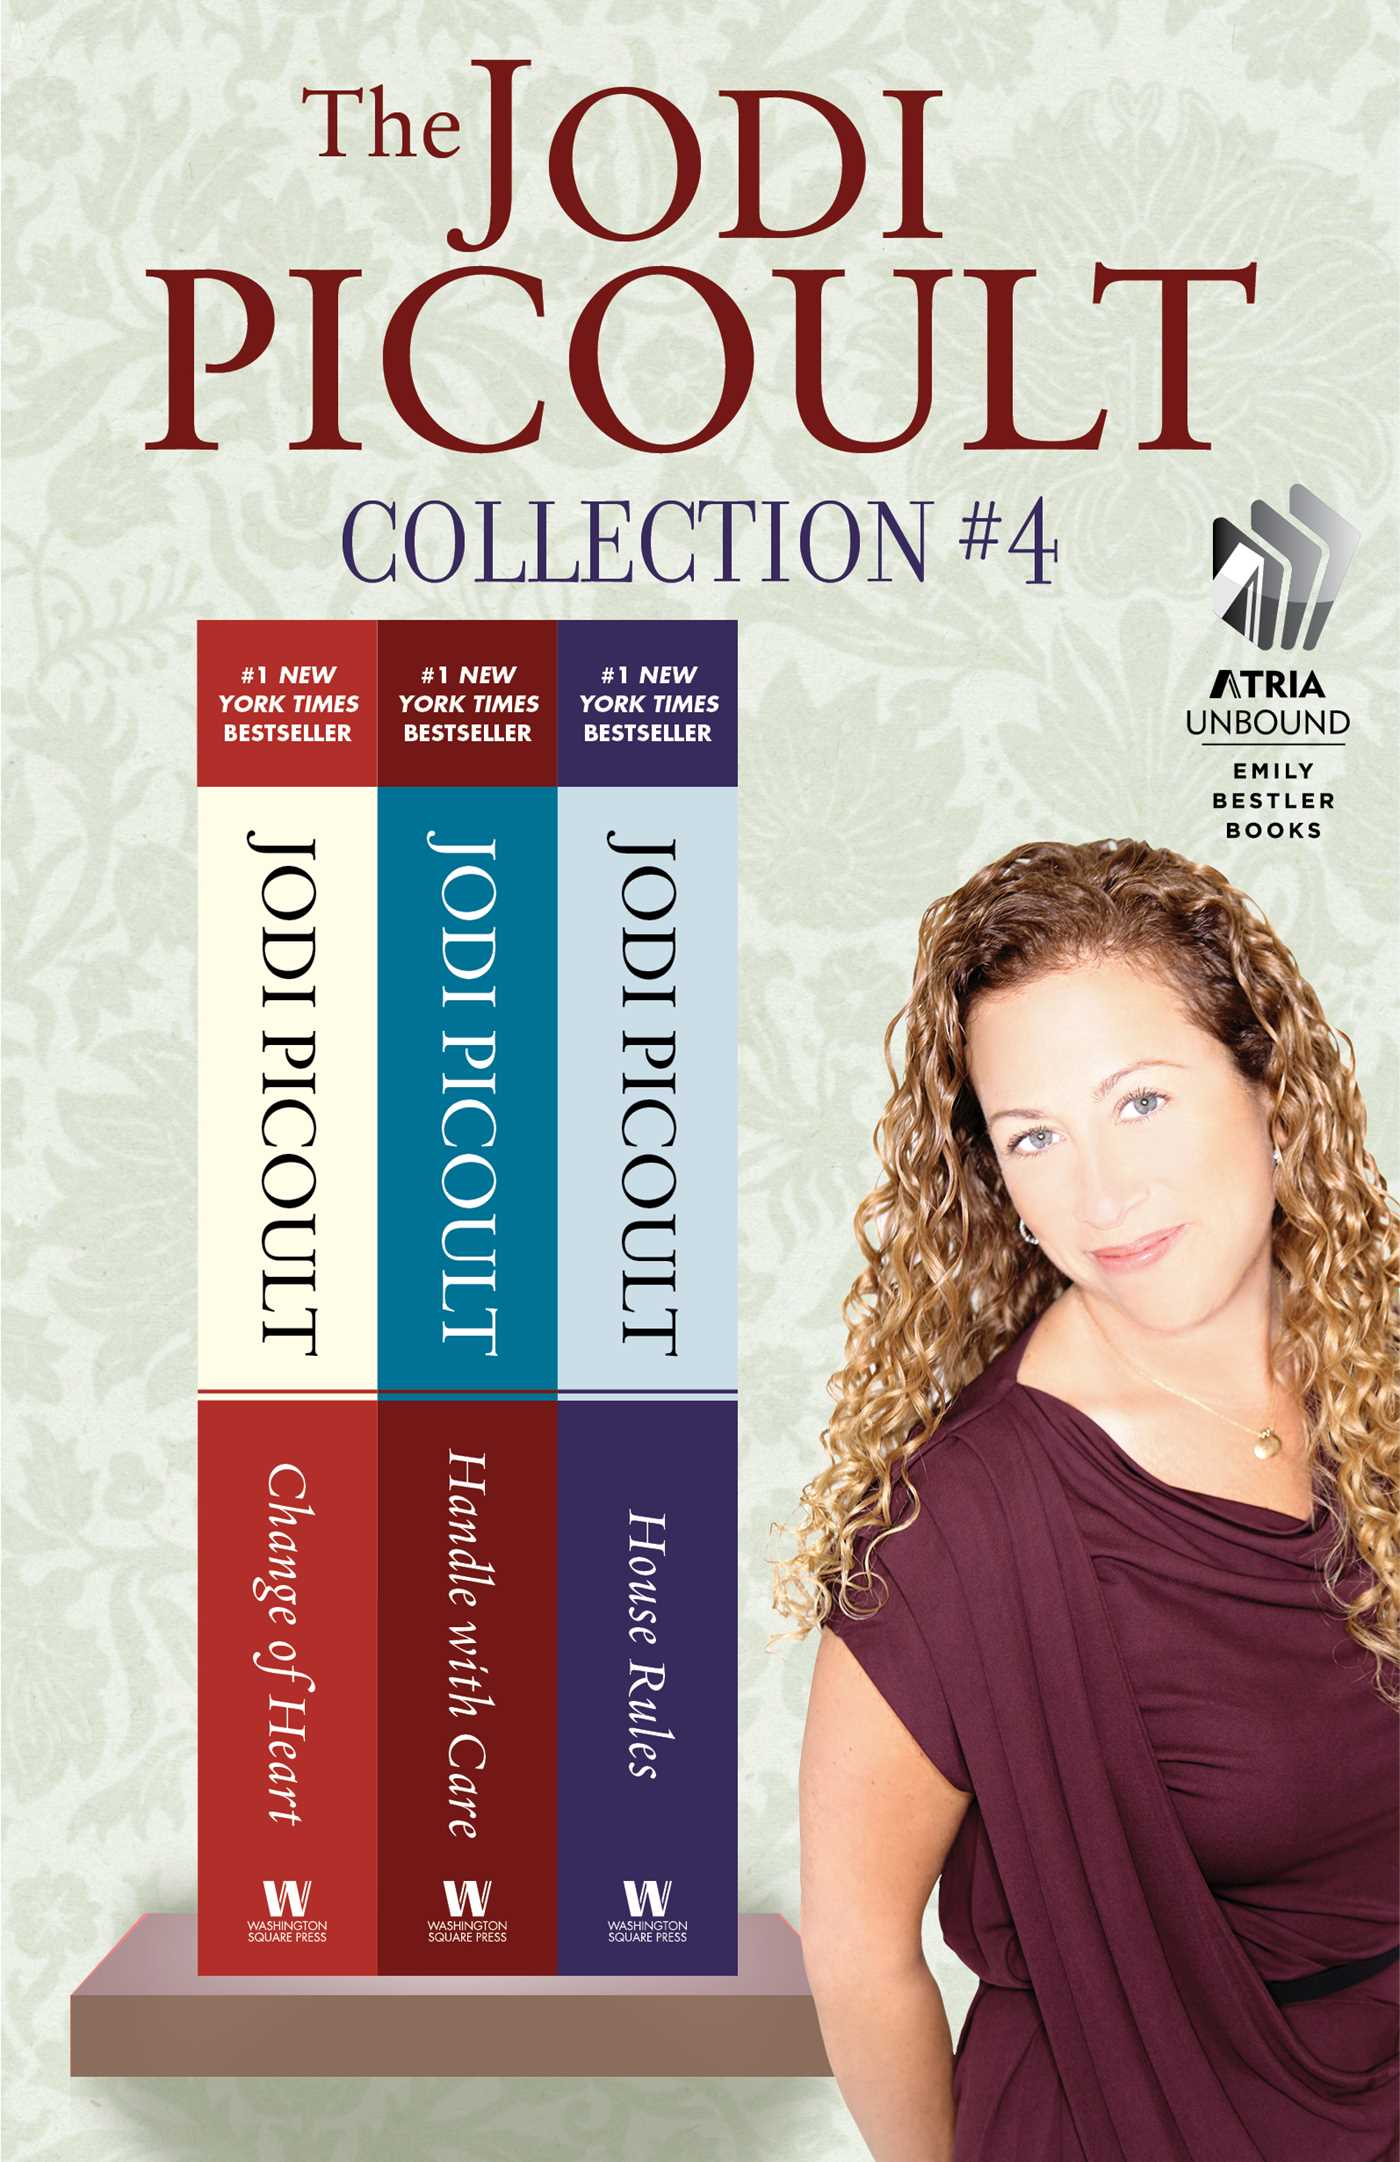 Jodi-picoult-collection-4-9781476703893_hr